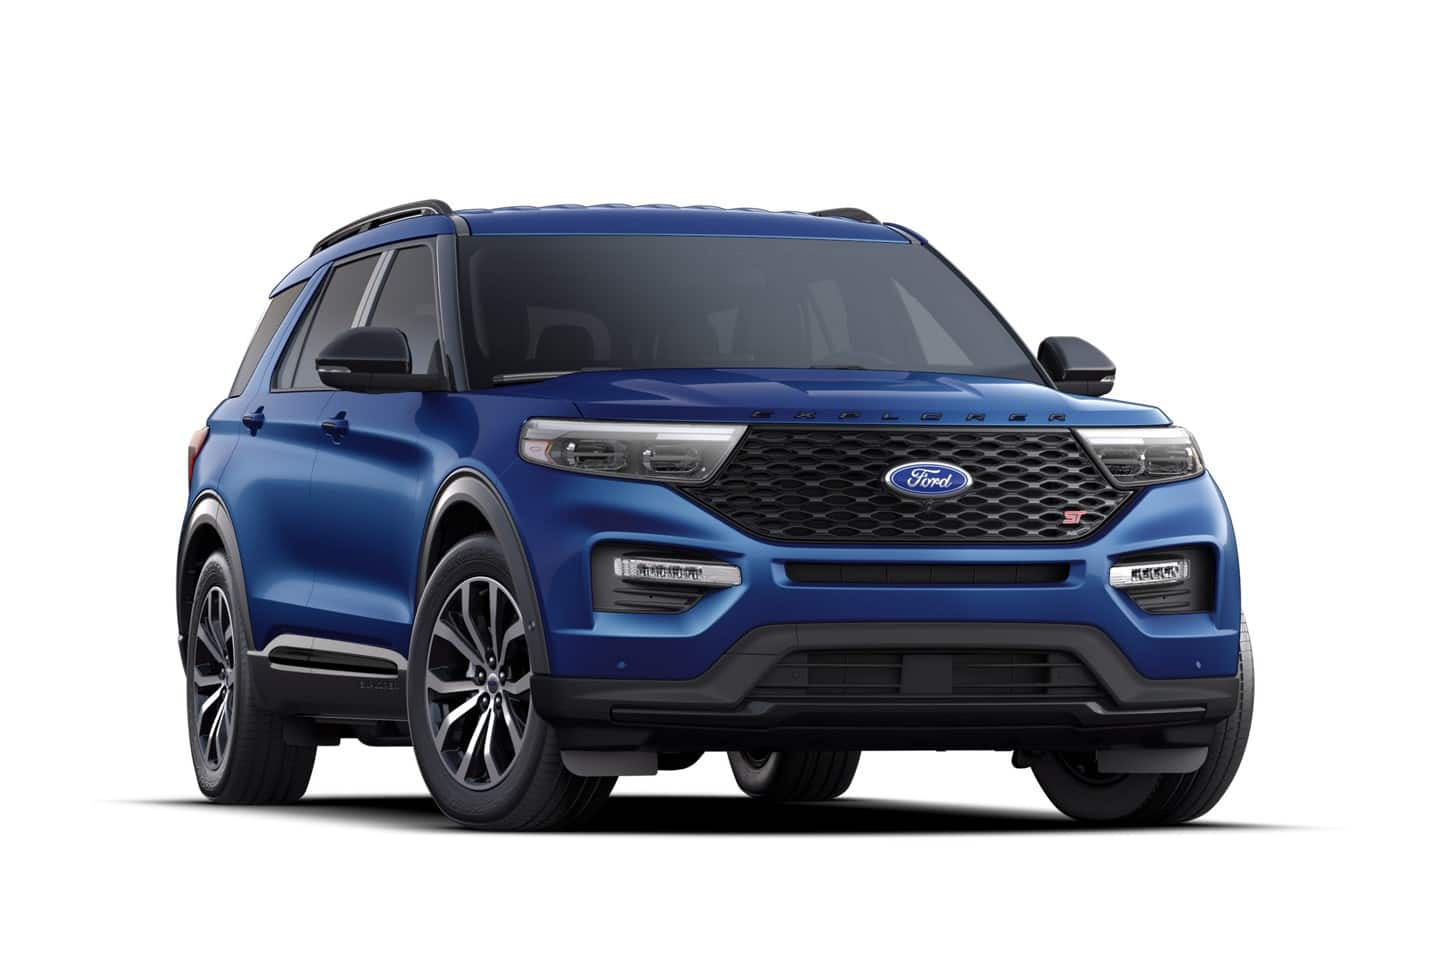 88 Best Review 2020 Ford Explorer Availability Spy Shoot by 2020 Ford Explorer Availability